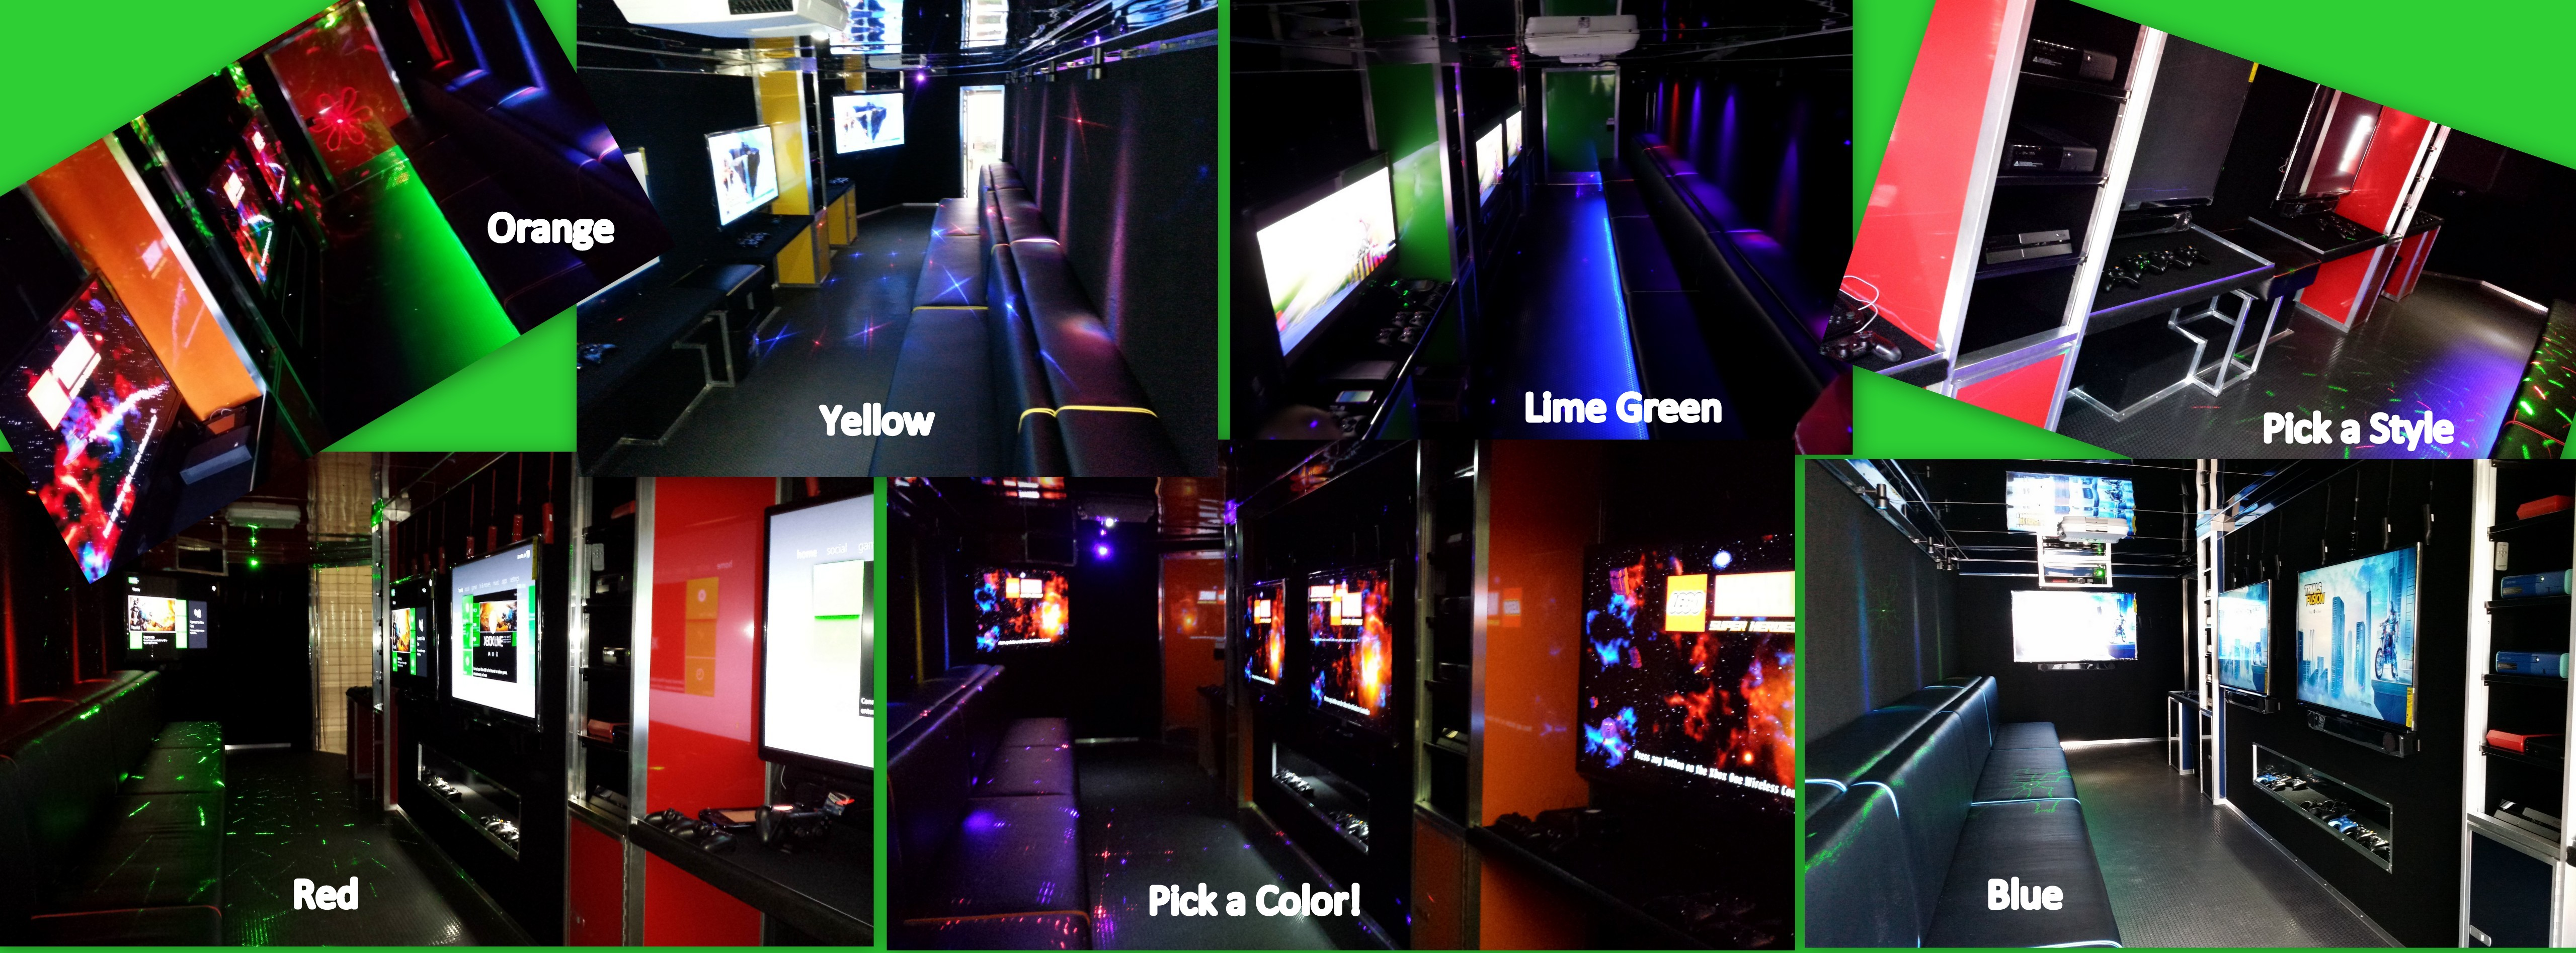 We are known for our Open Interior Design with bright colors and open space! Add in our Laser Light Show, Bench Under-glow and Colored LED Lights and it's GAME ON!